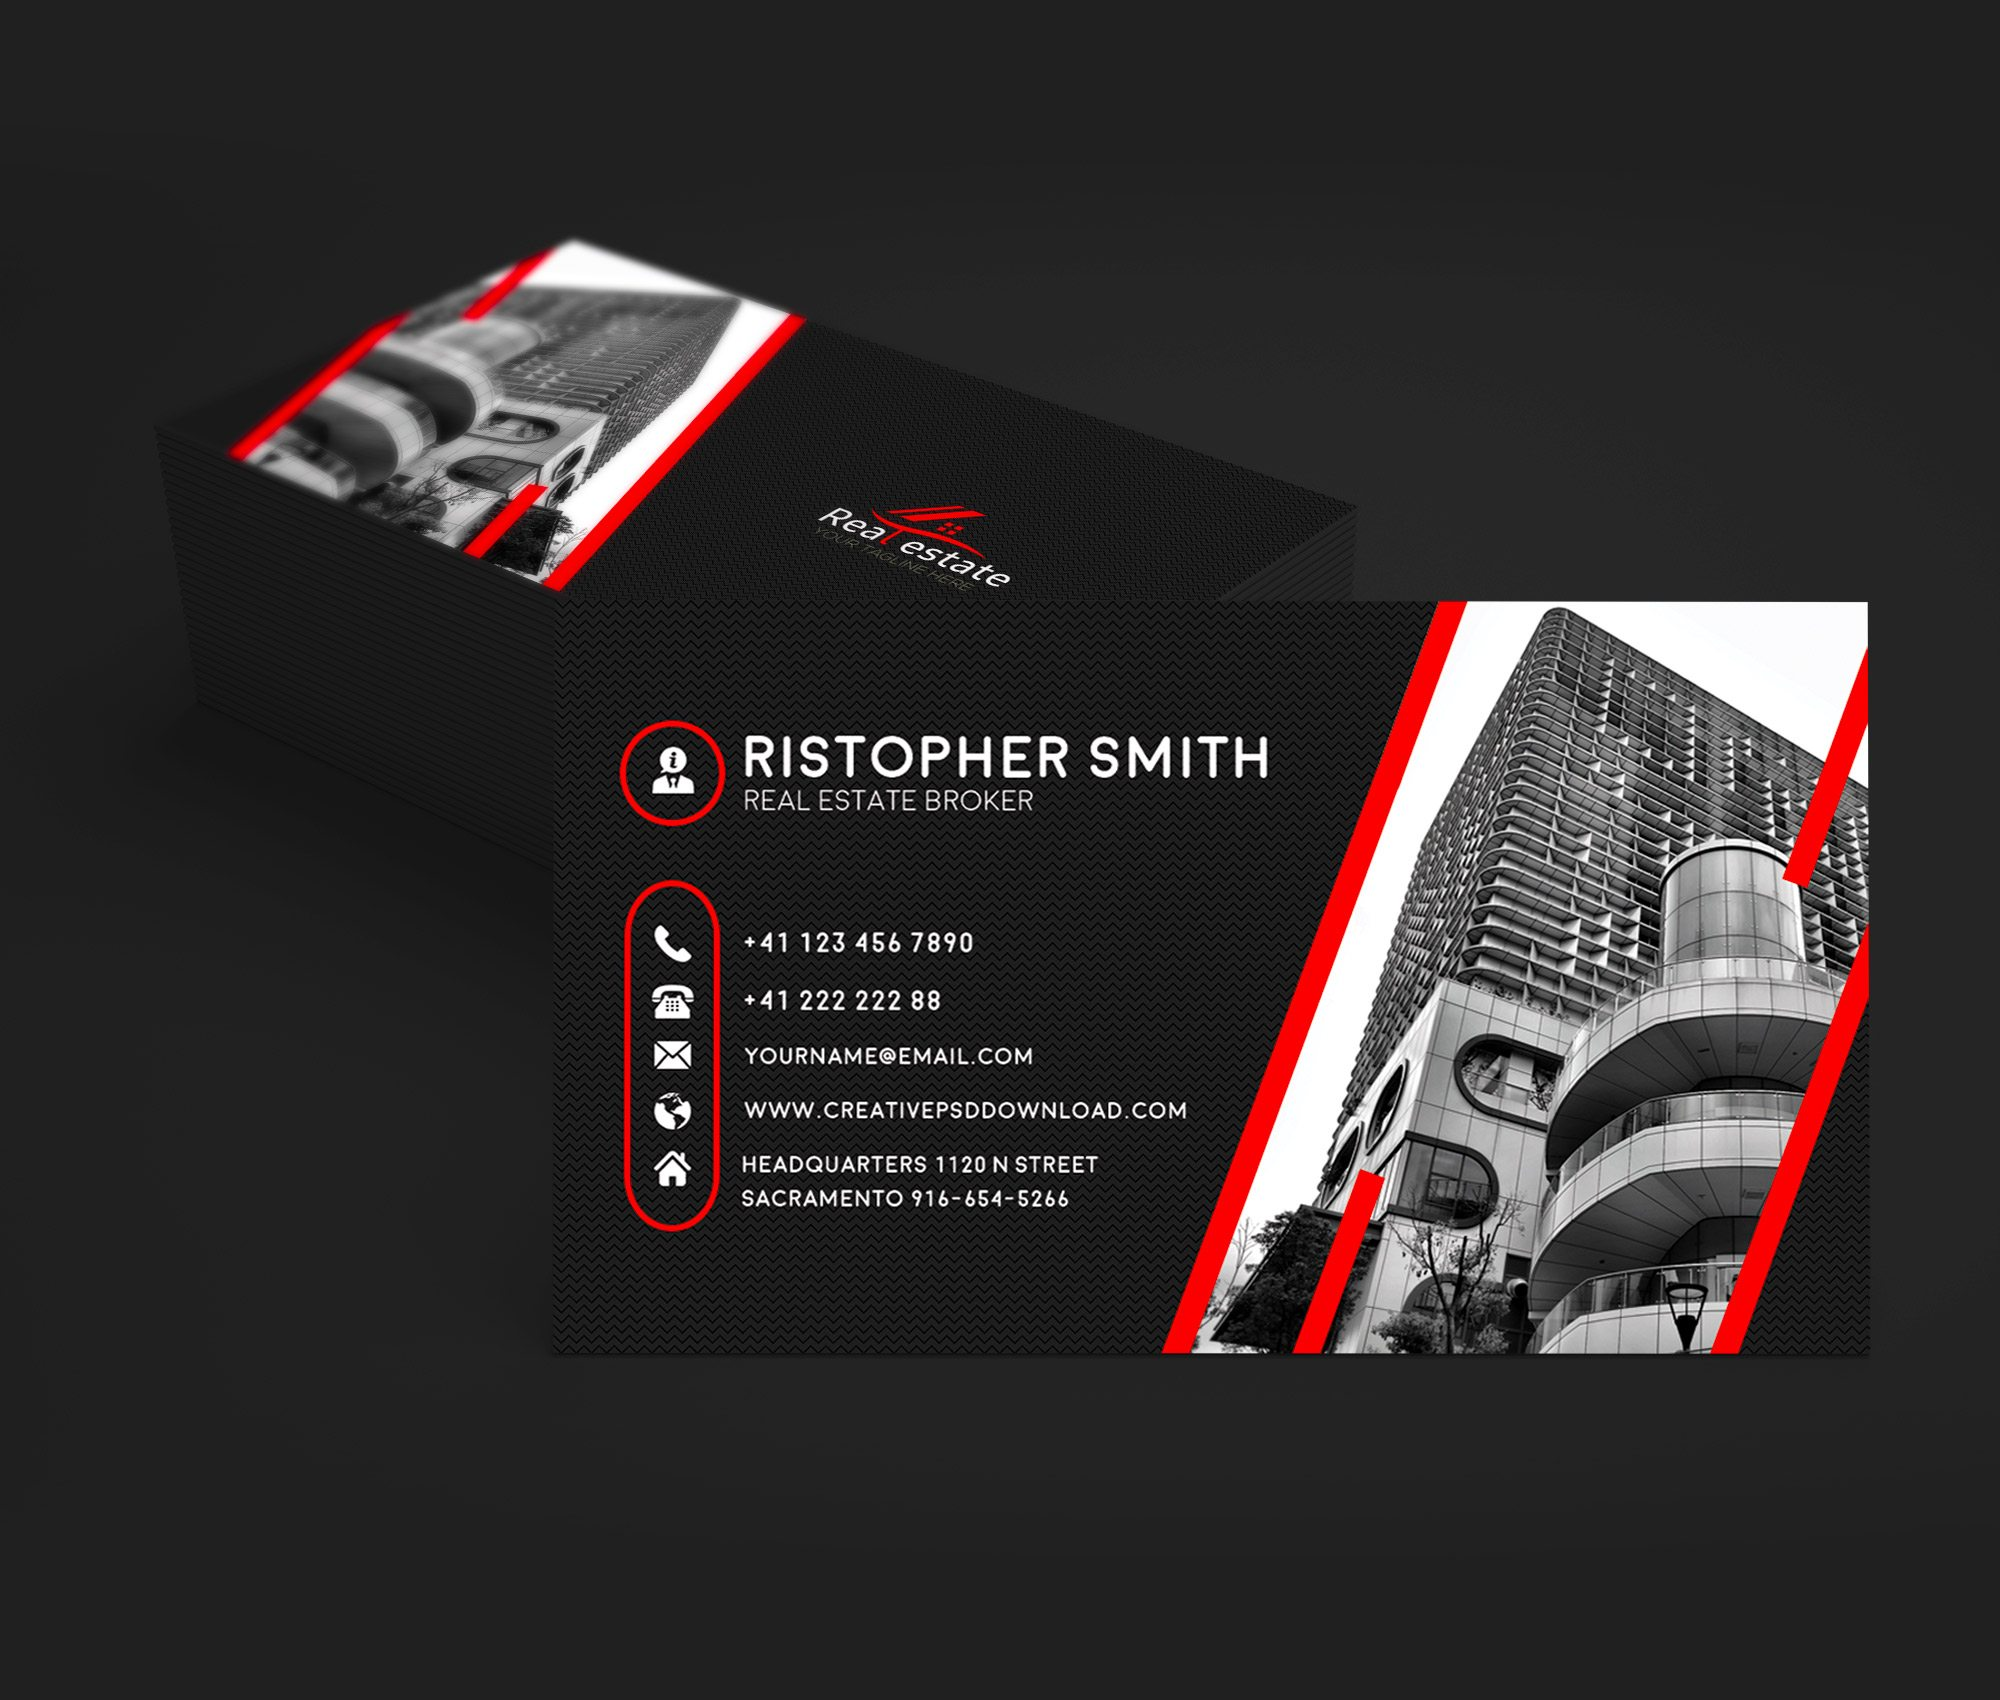 Real estate business cards templates free mandegarfo real estate business cards templates free wajeb Image collections